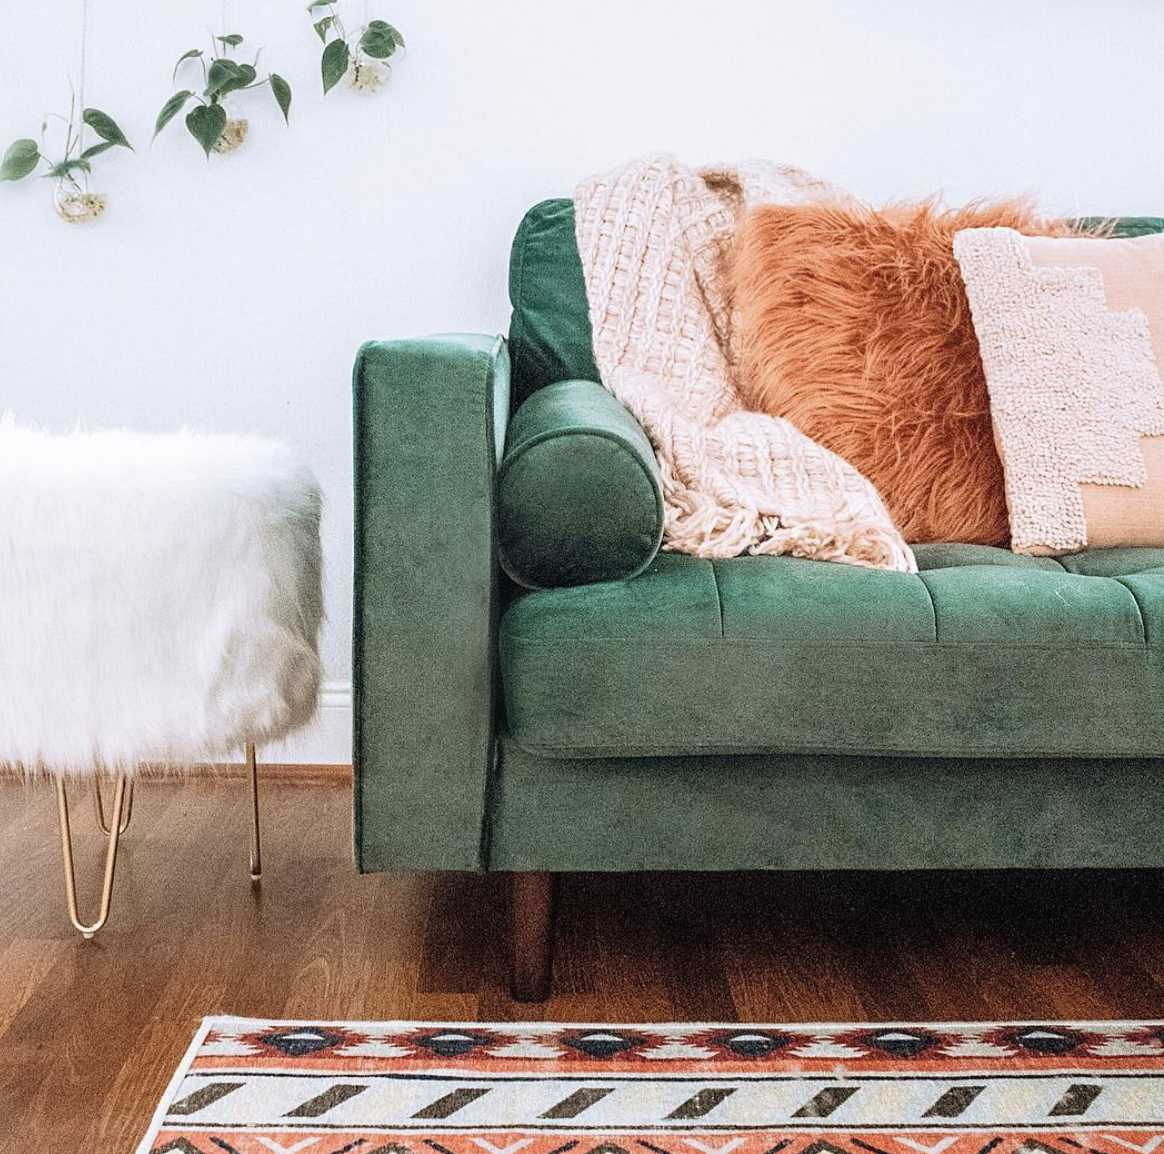 green couch with pillows